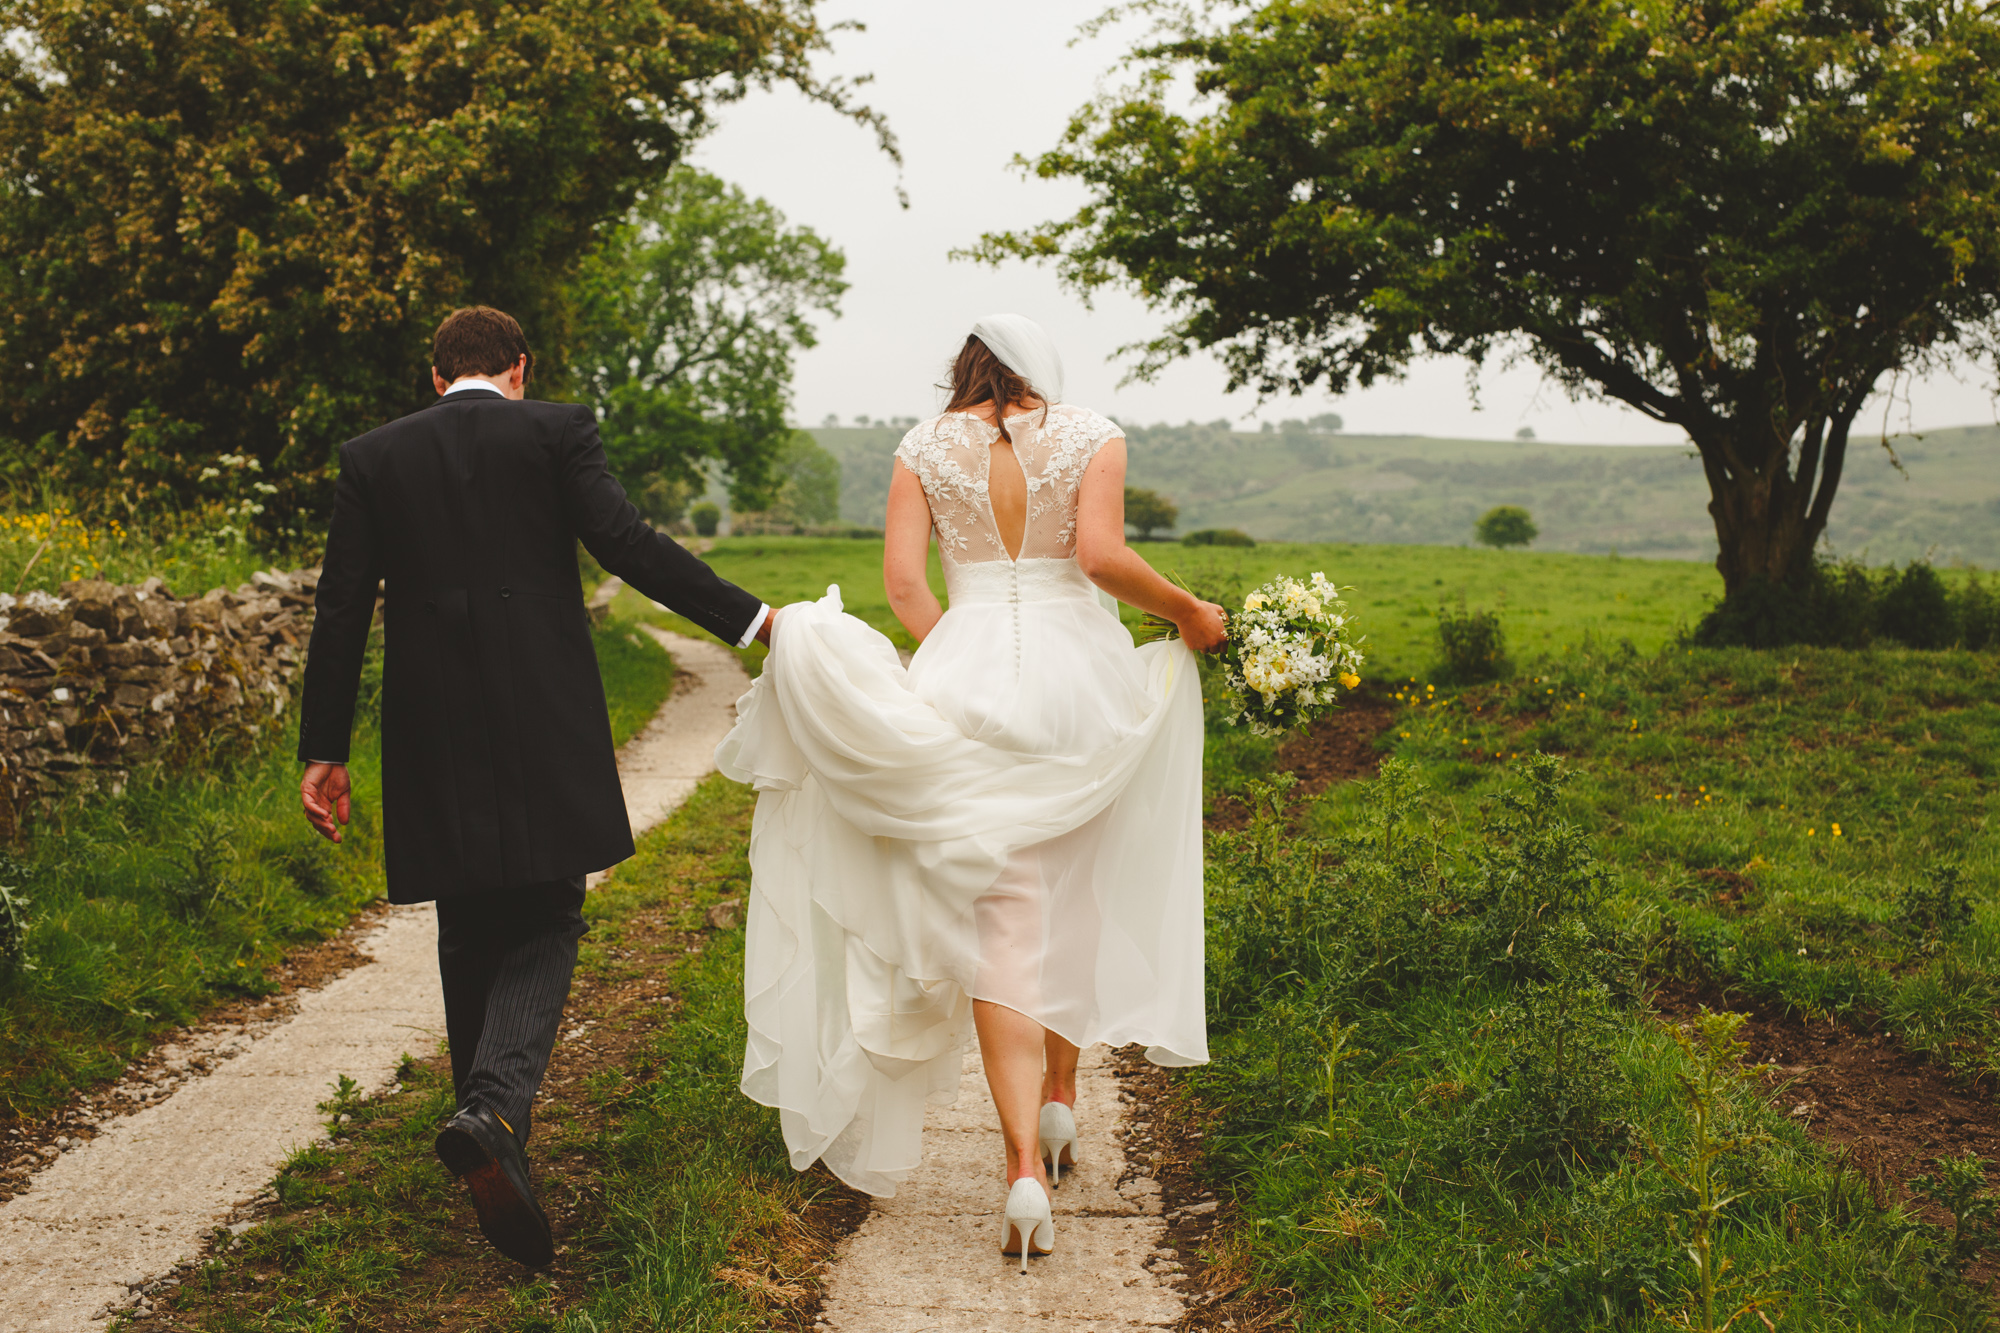 peak-district-derbyshire-wedding-photographer-11.jpg